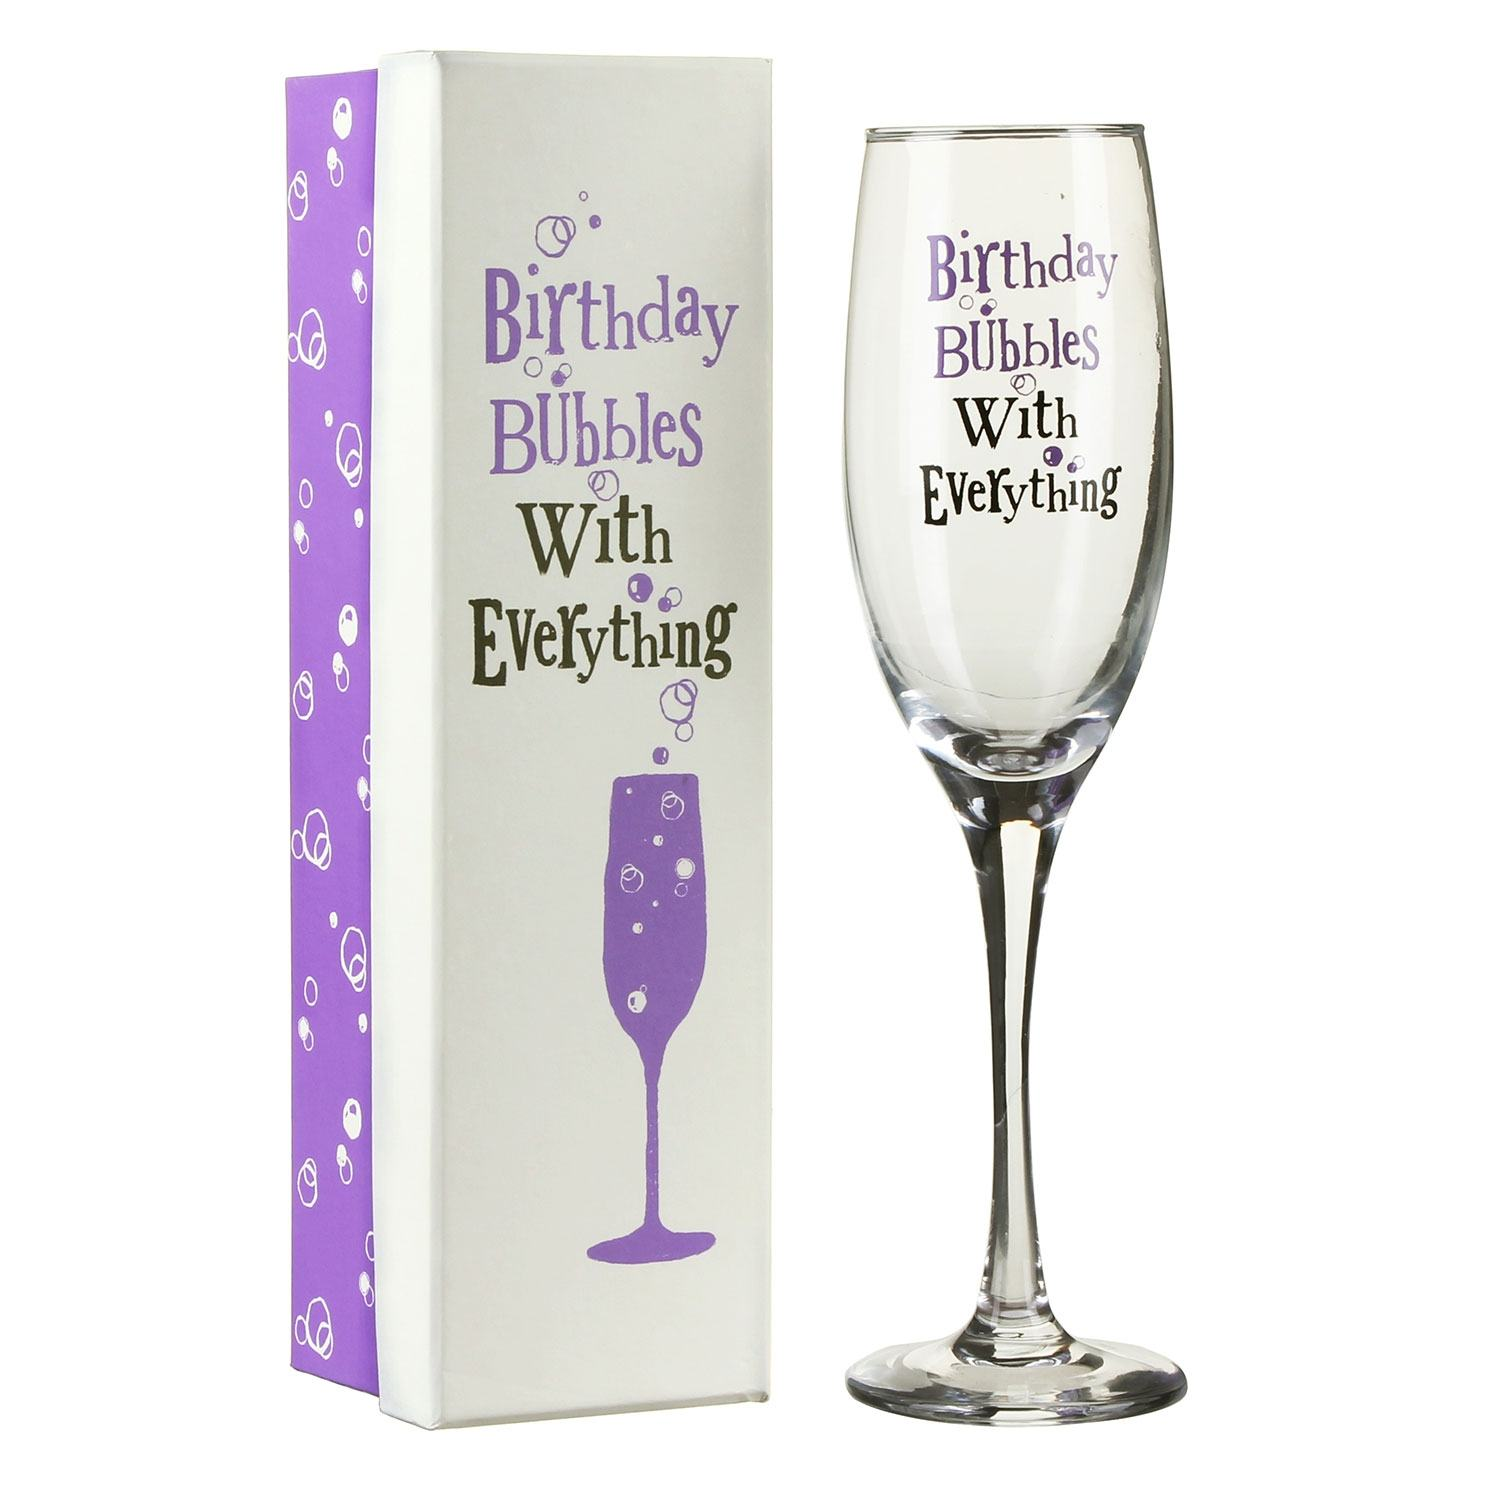 The Bright Side Birthday Bubbles With Everything Glass